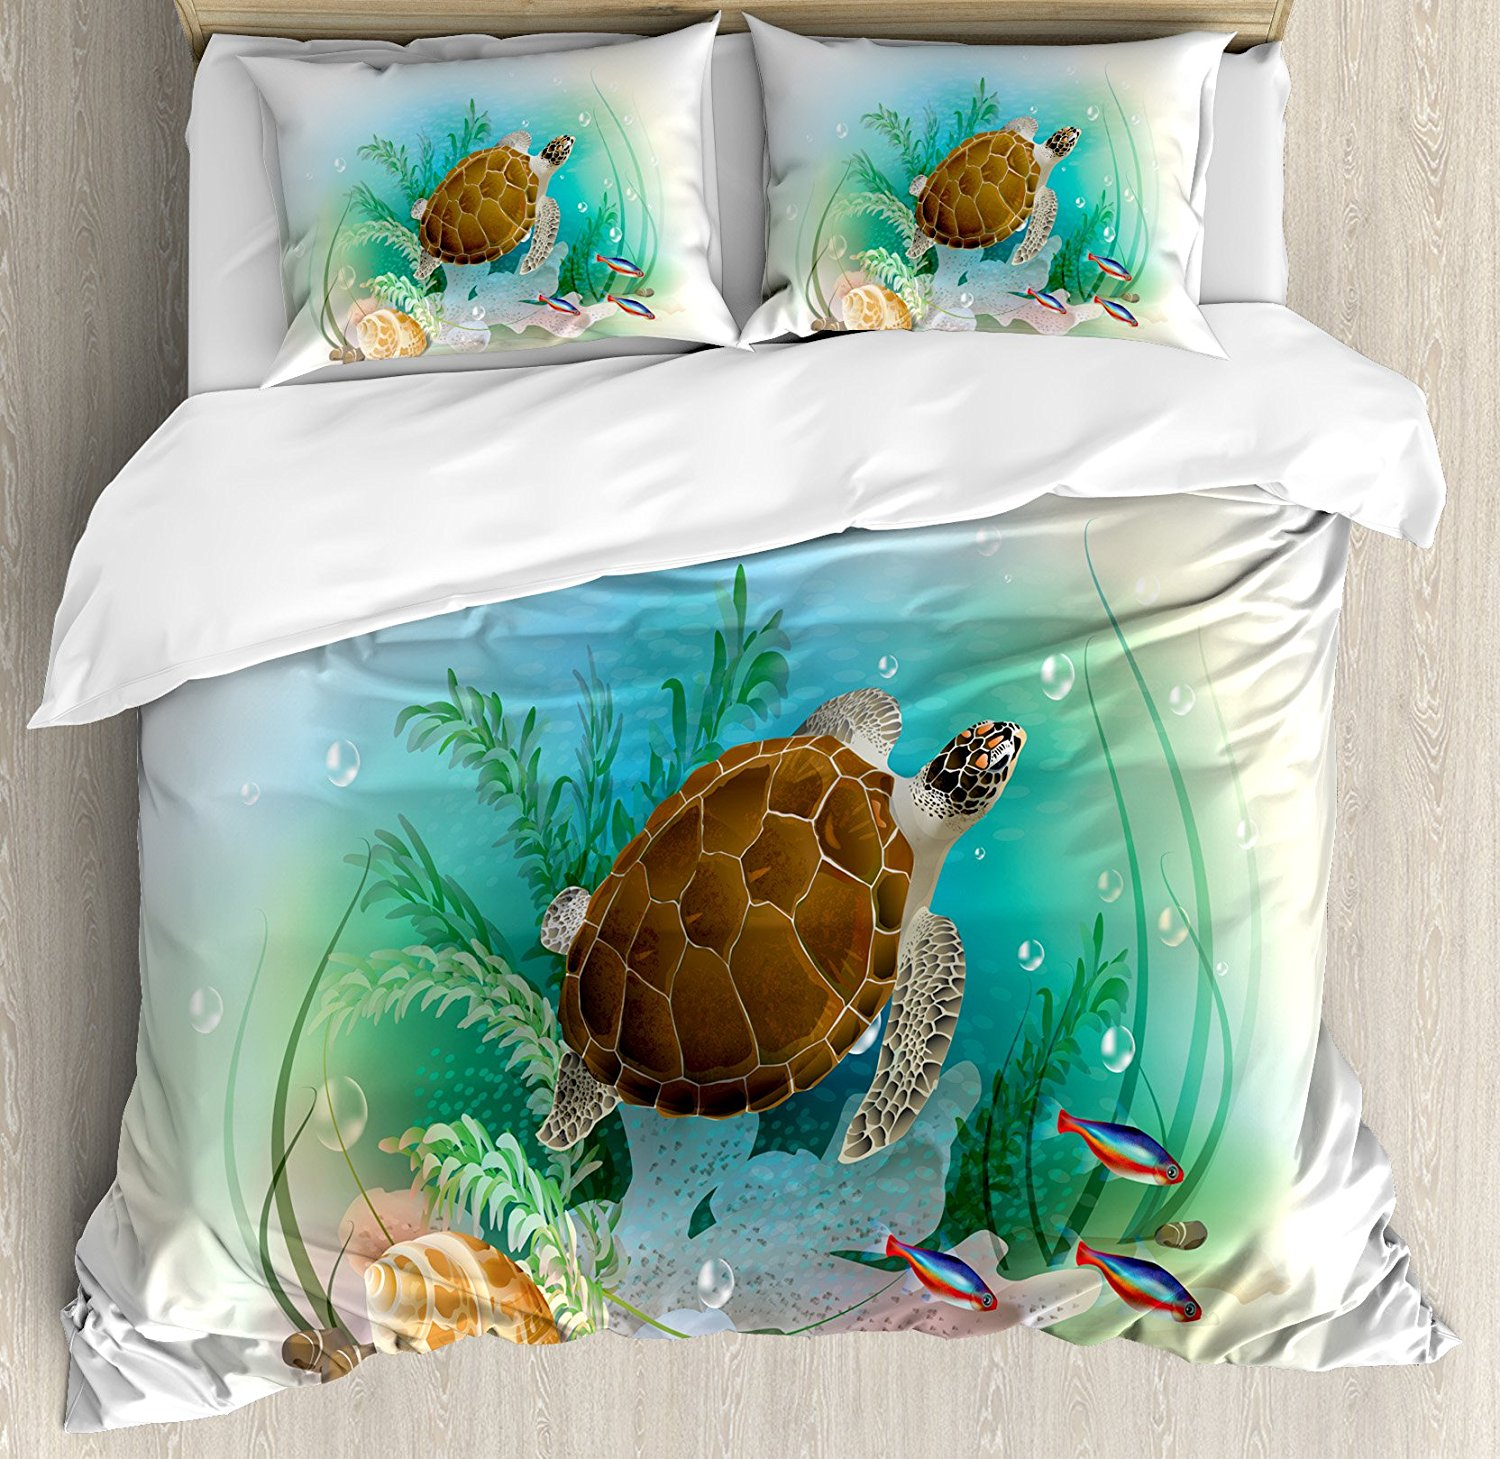 Decor Duvet Cover Set Sea Turtle Swims in the Ocean Tropical Underwater World Aquarium Illustration Print 4 Piece Bedding Set image